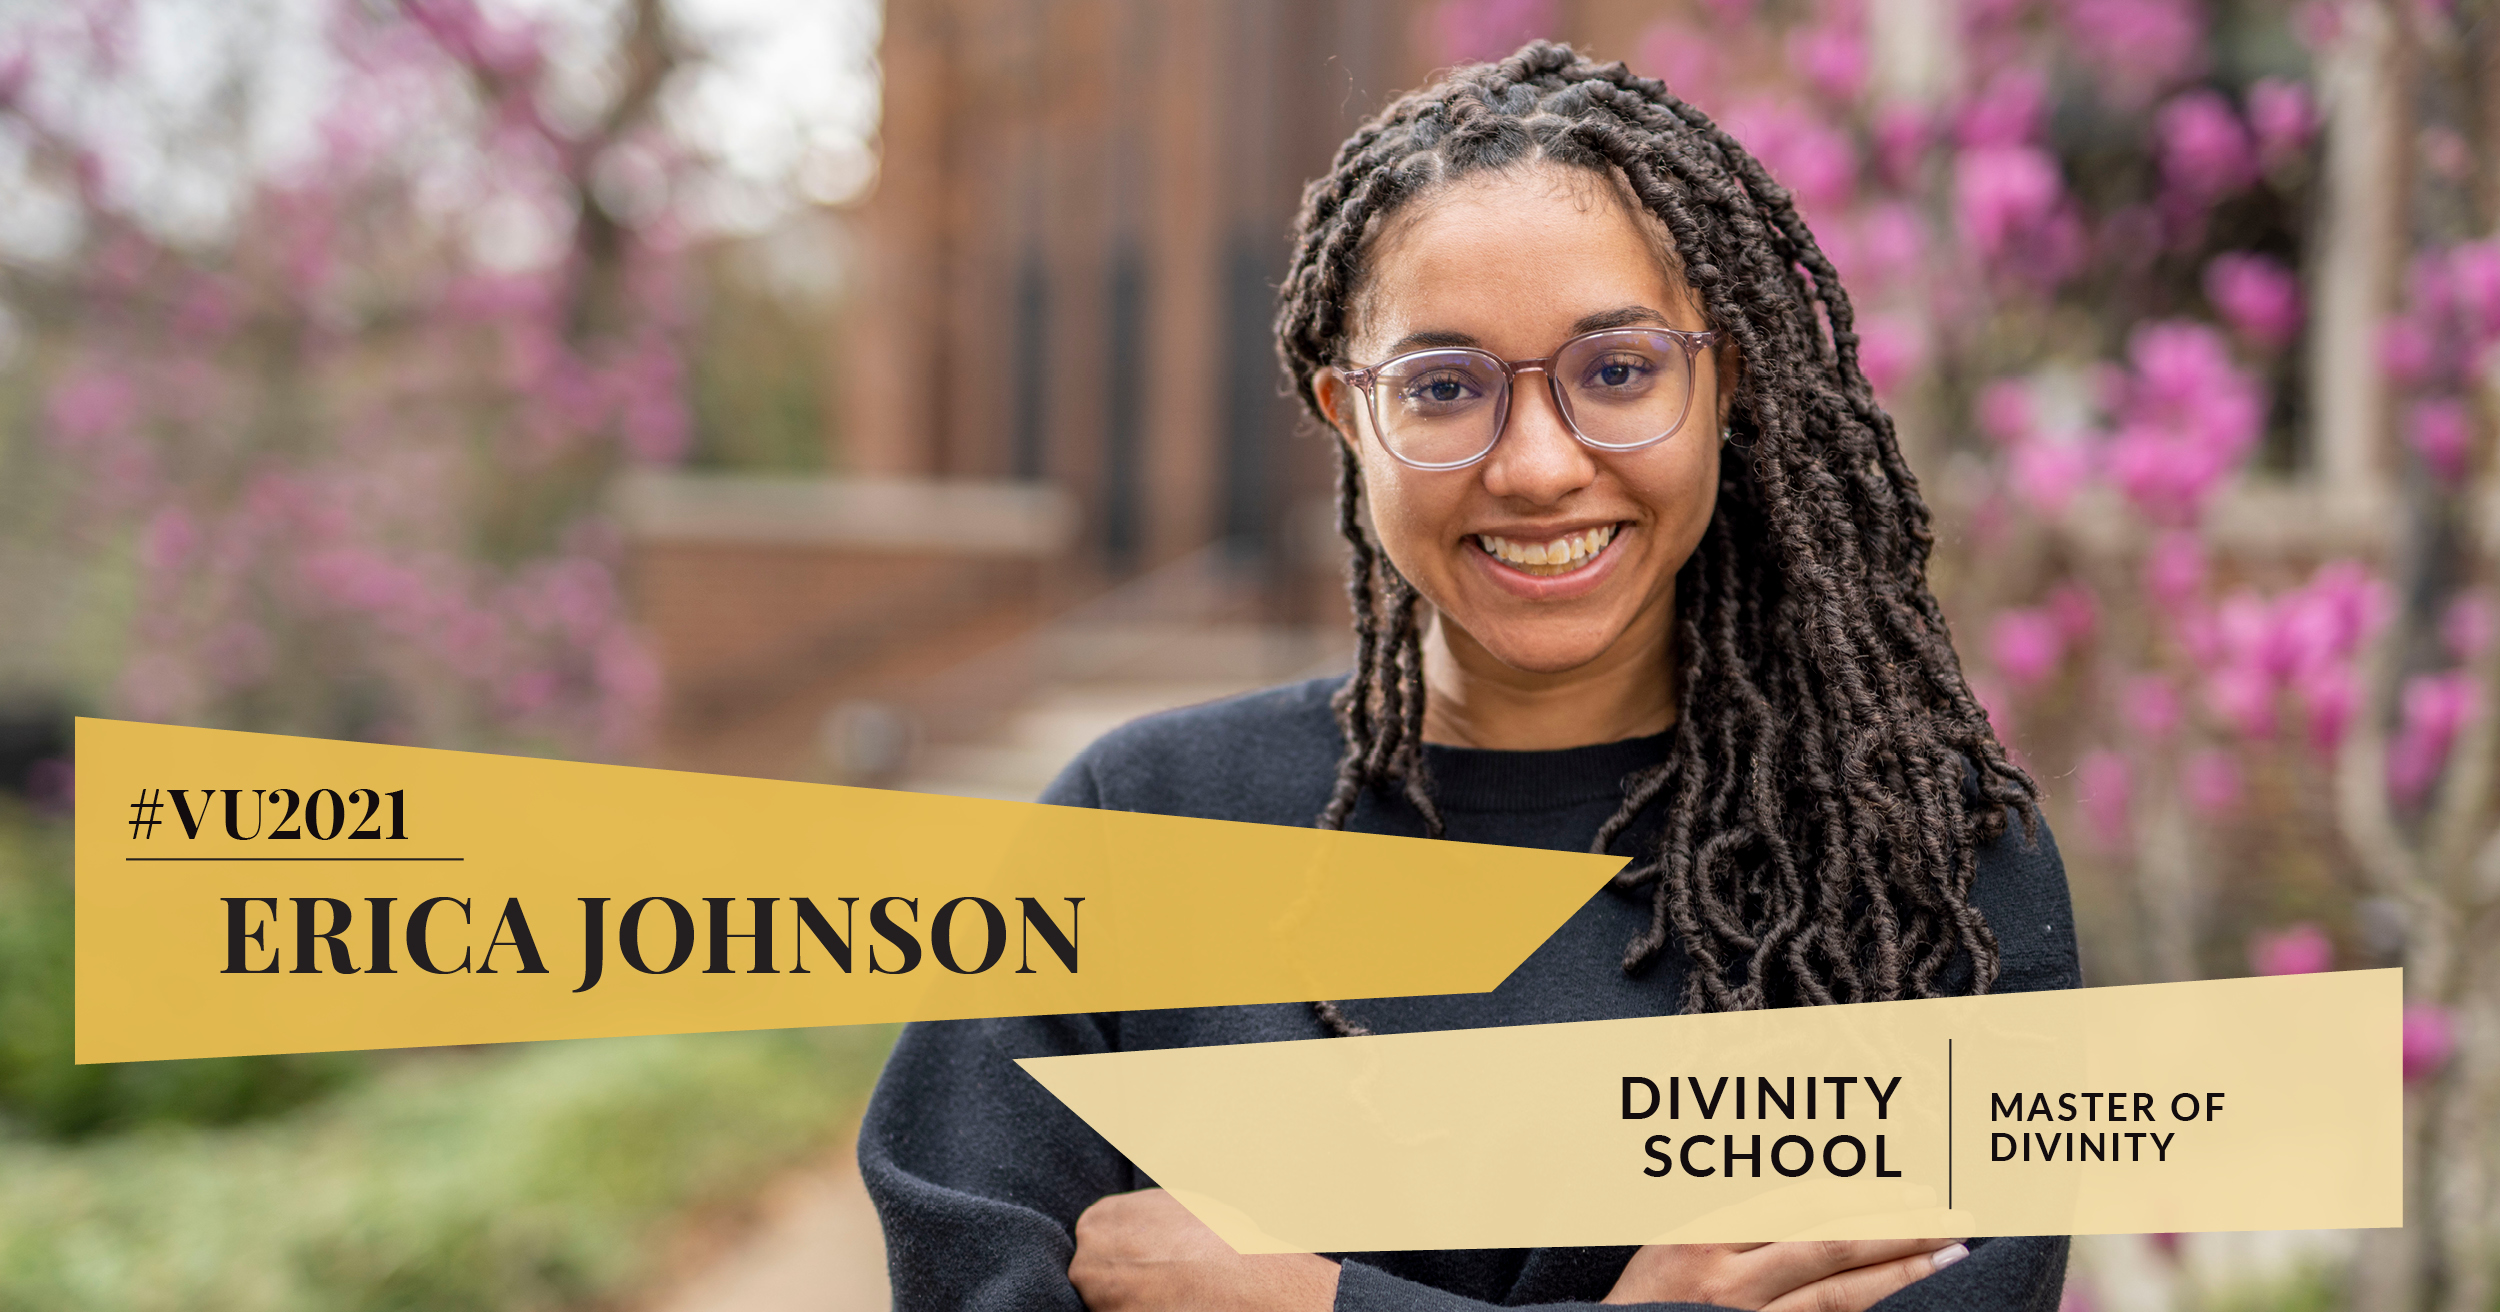 Class of 2021: Divinity student pursues master's work at the junction of theology and social justice